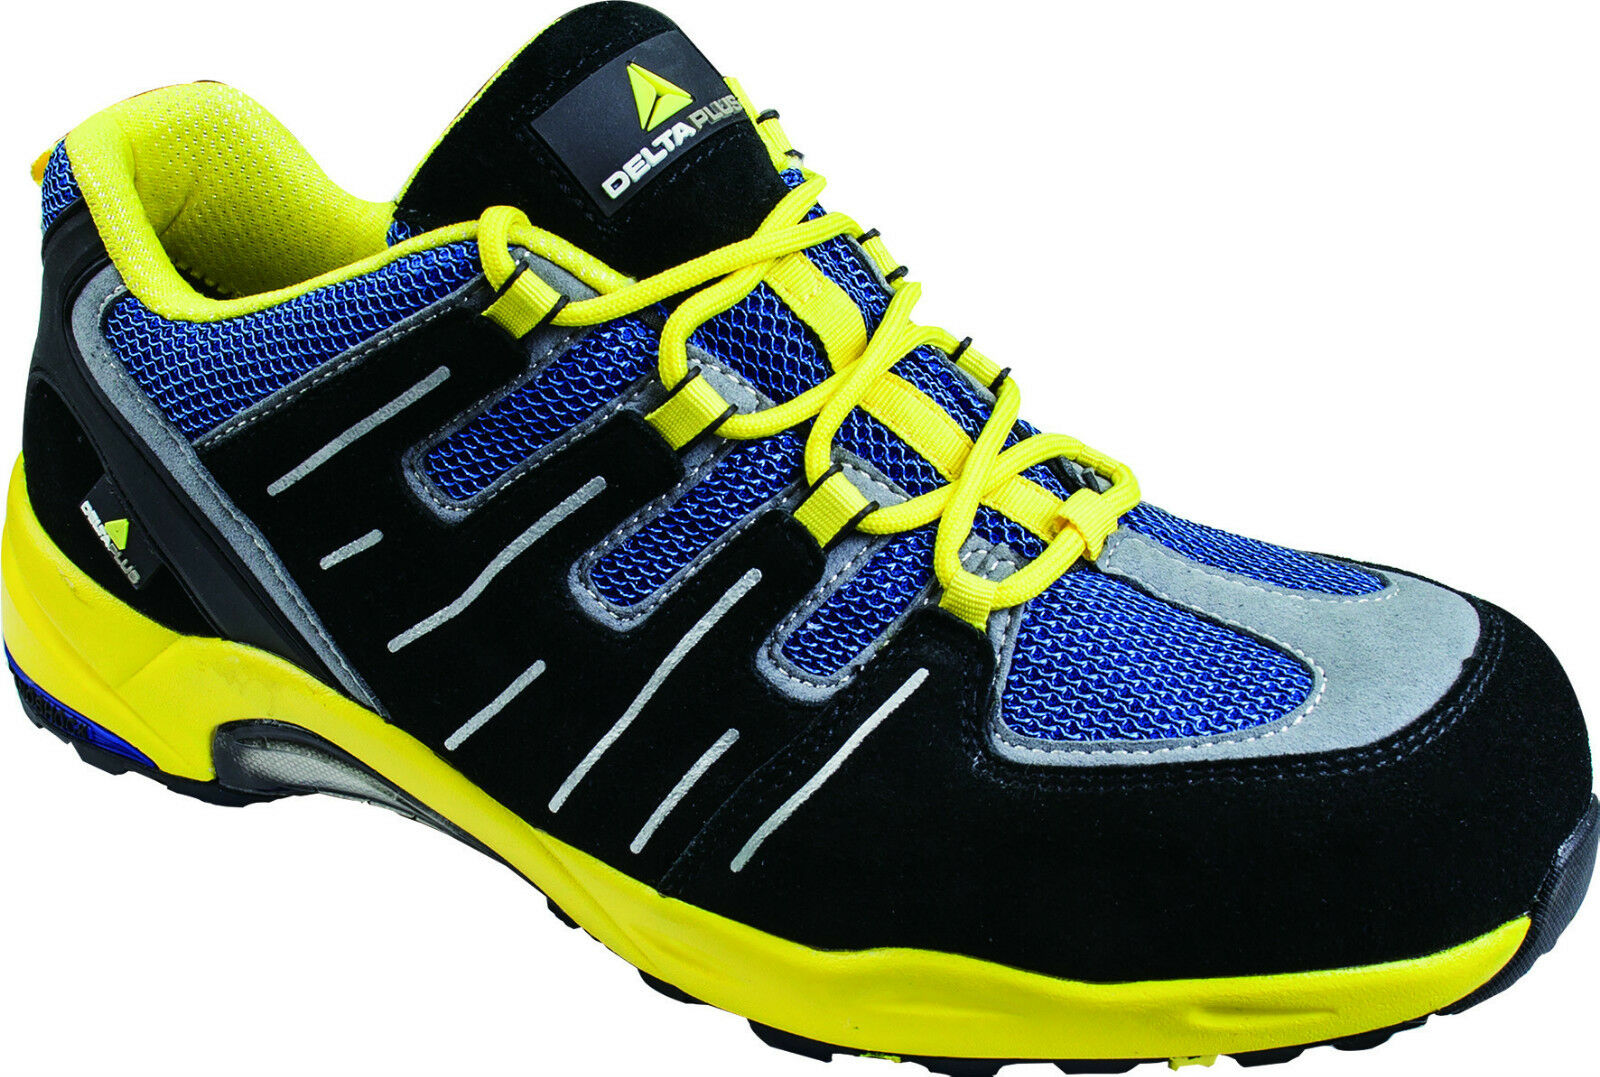 Delta Plus Panoply XR302 Black Yellow Metal Free Composite Toe Safety Trainers